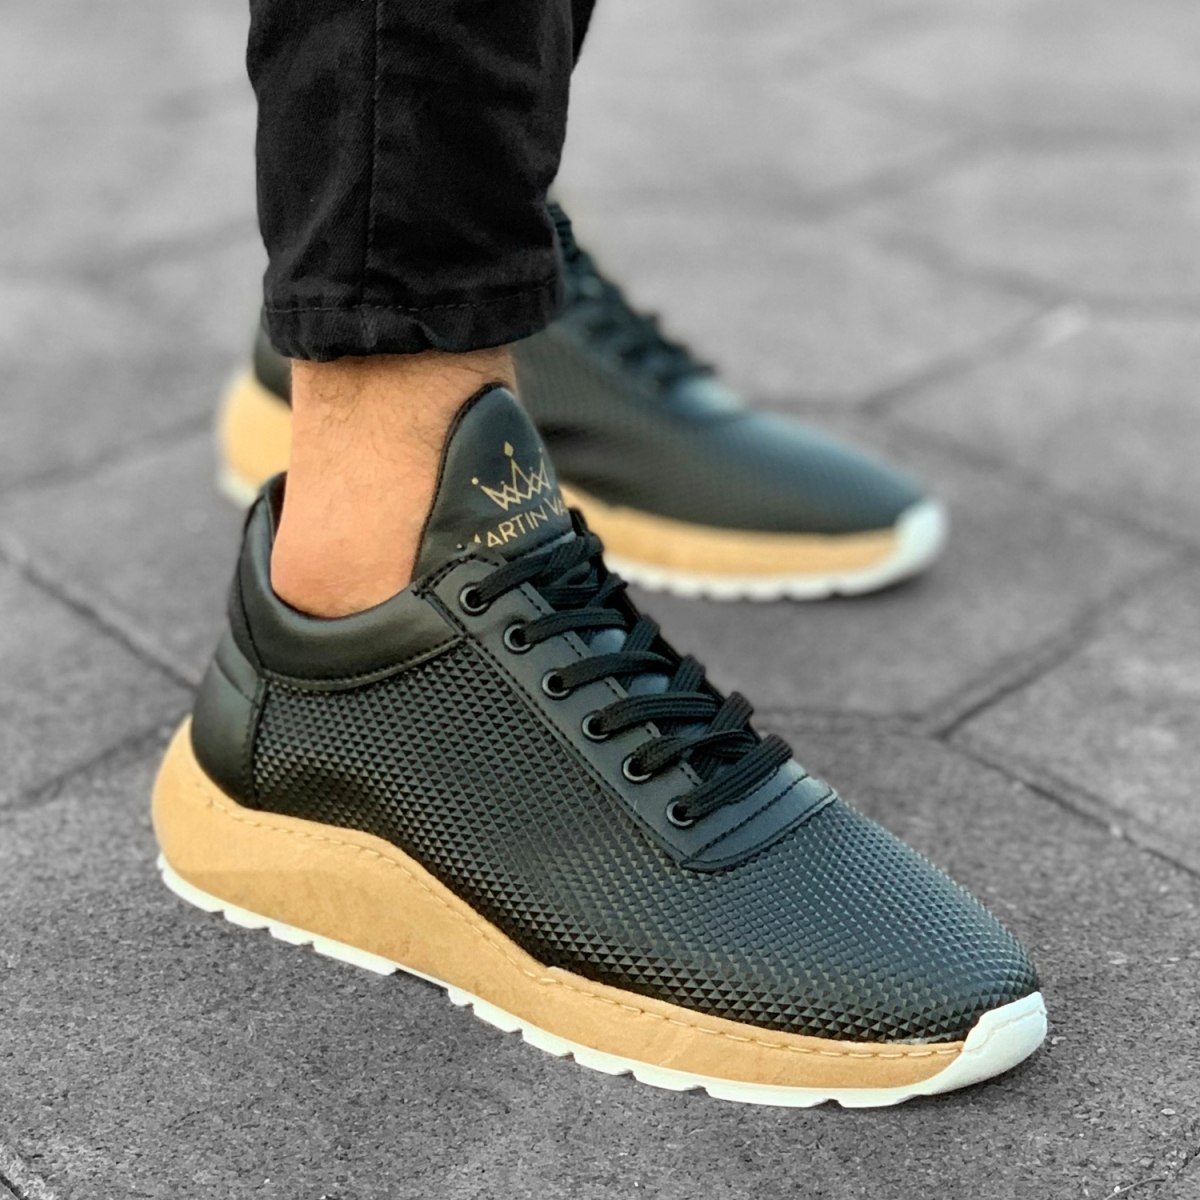 Mountain Sole in Black-Beige